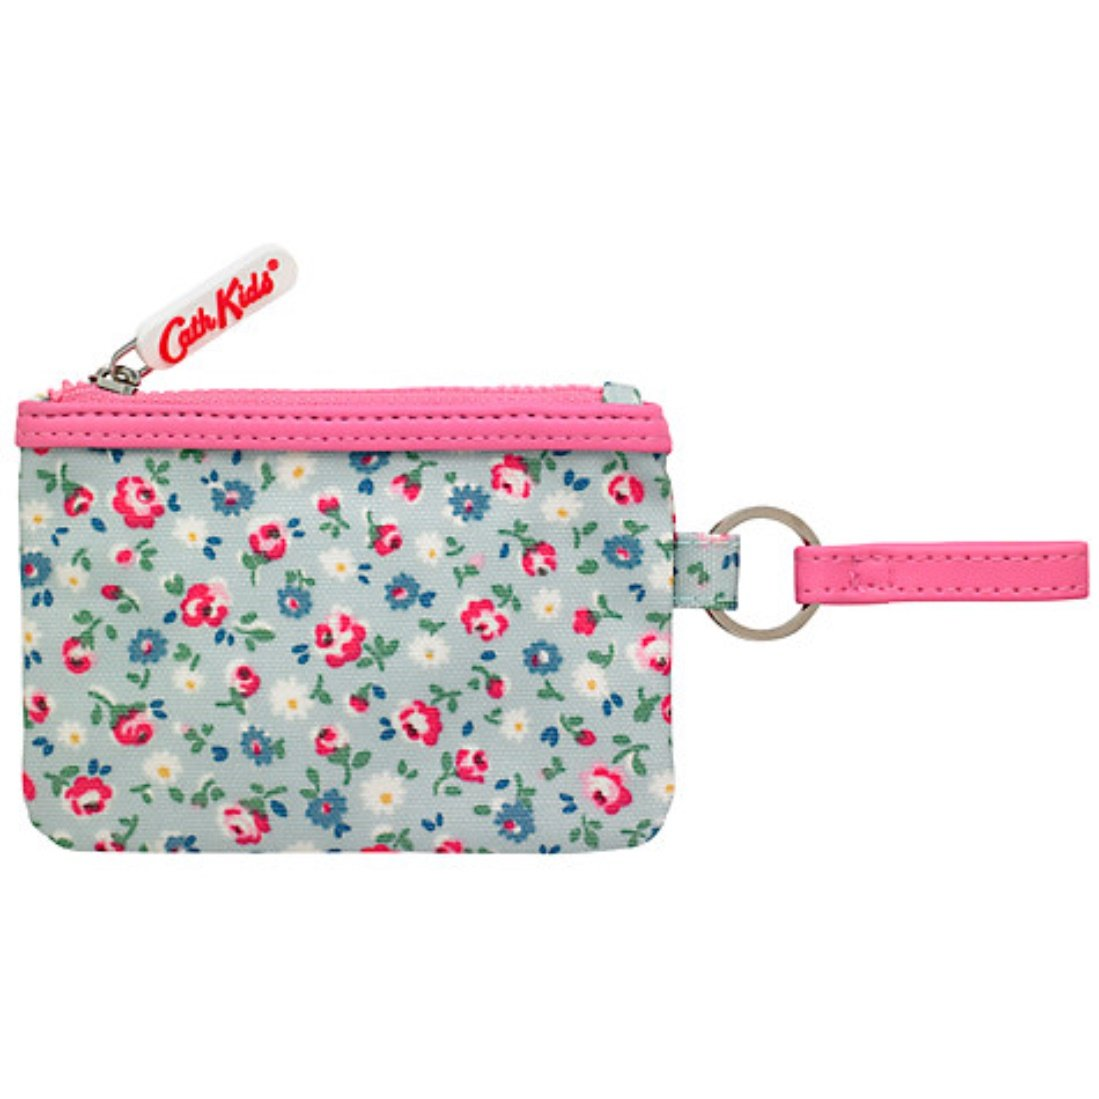 Cath Kidston - Monedero Niñas multicolor: Amazon.es: Zapatos ...